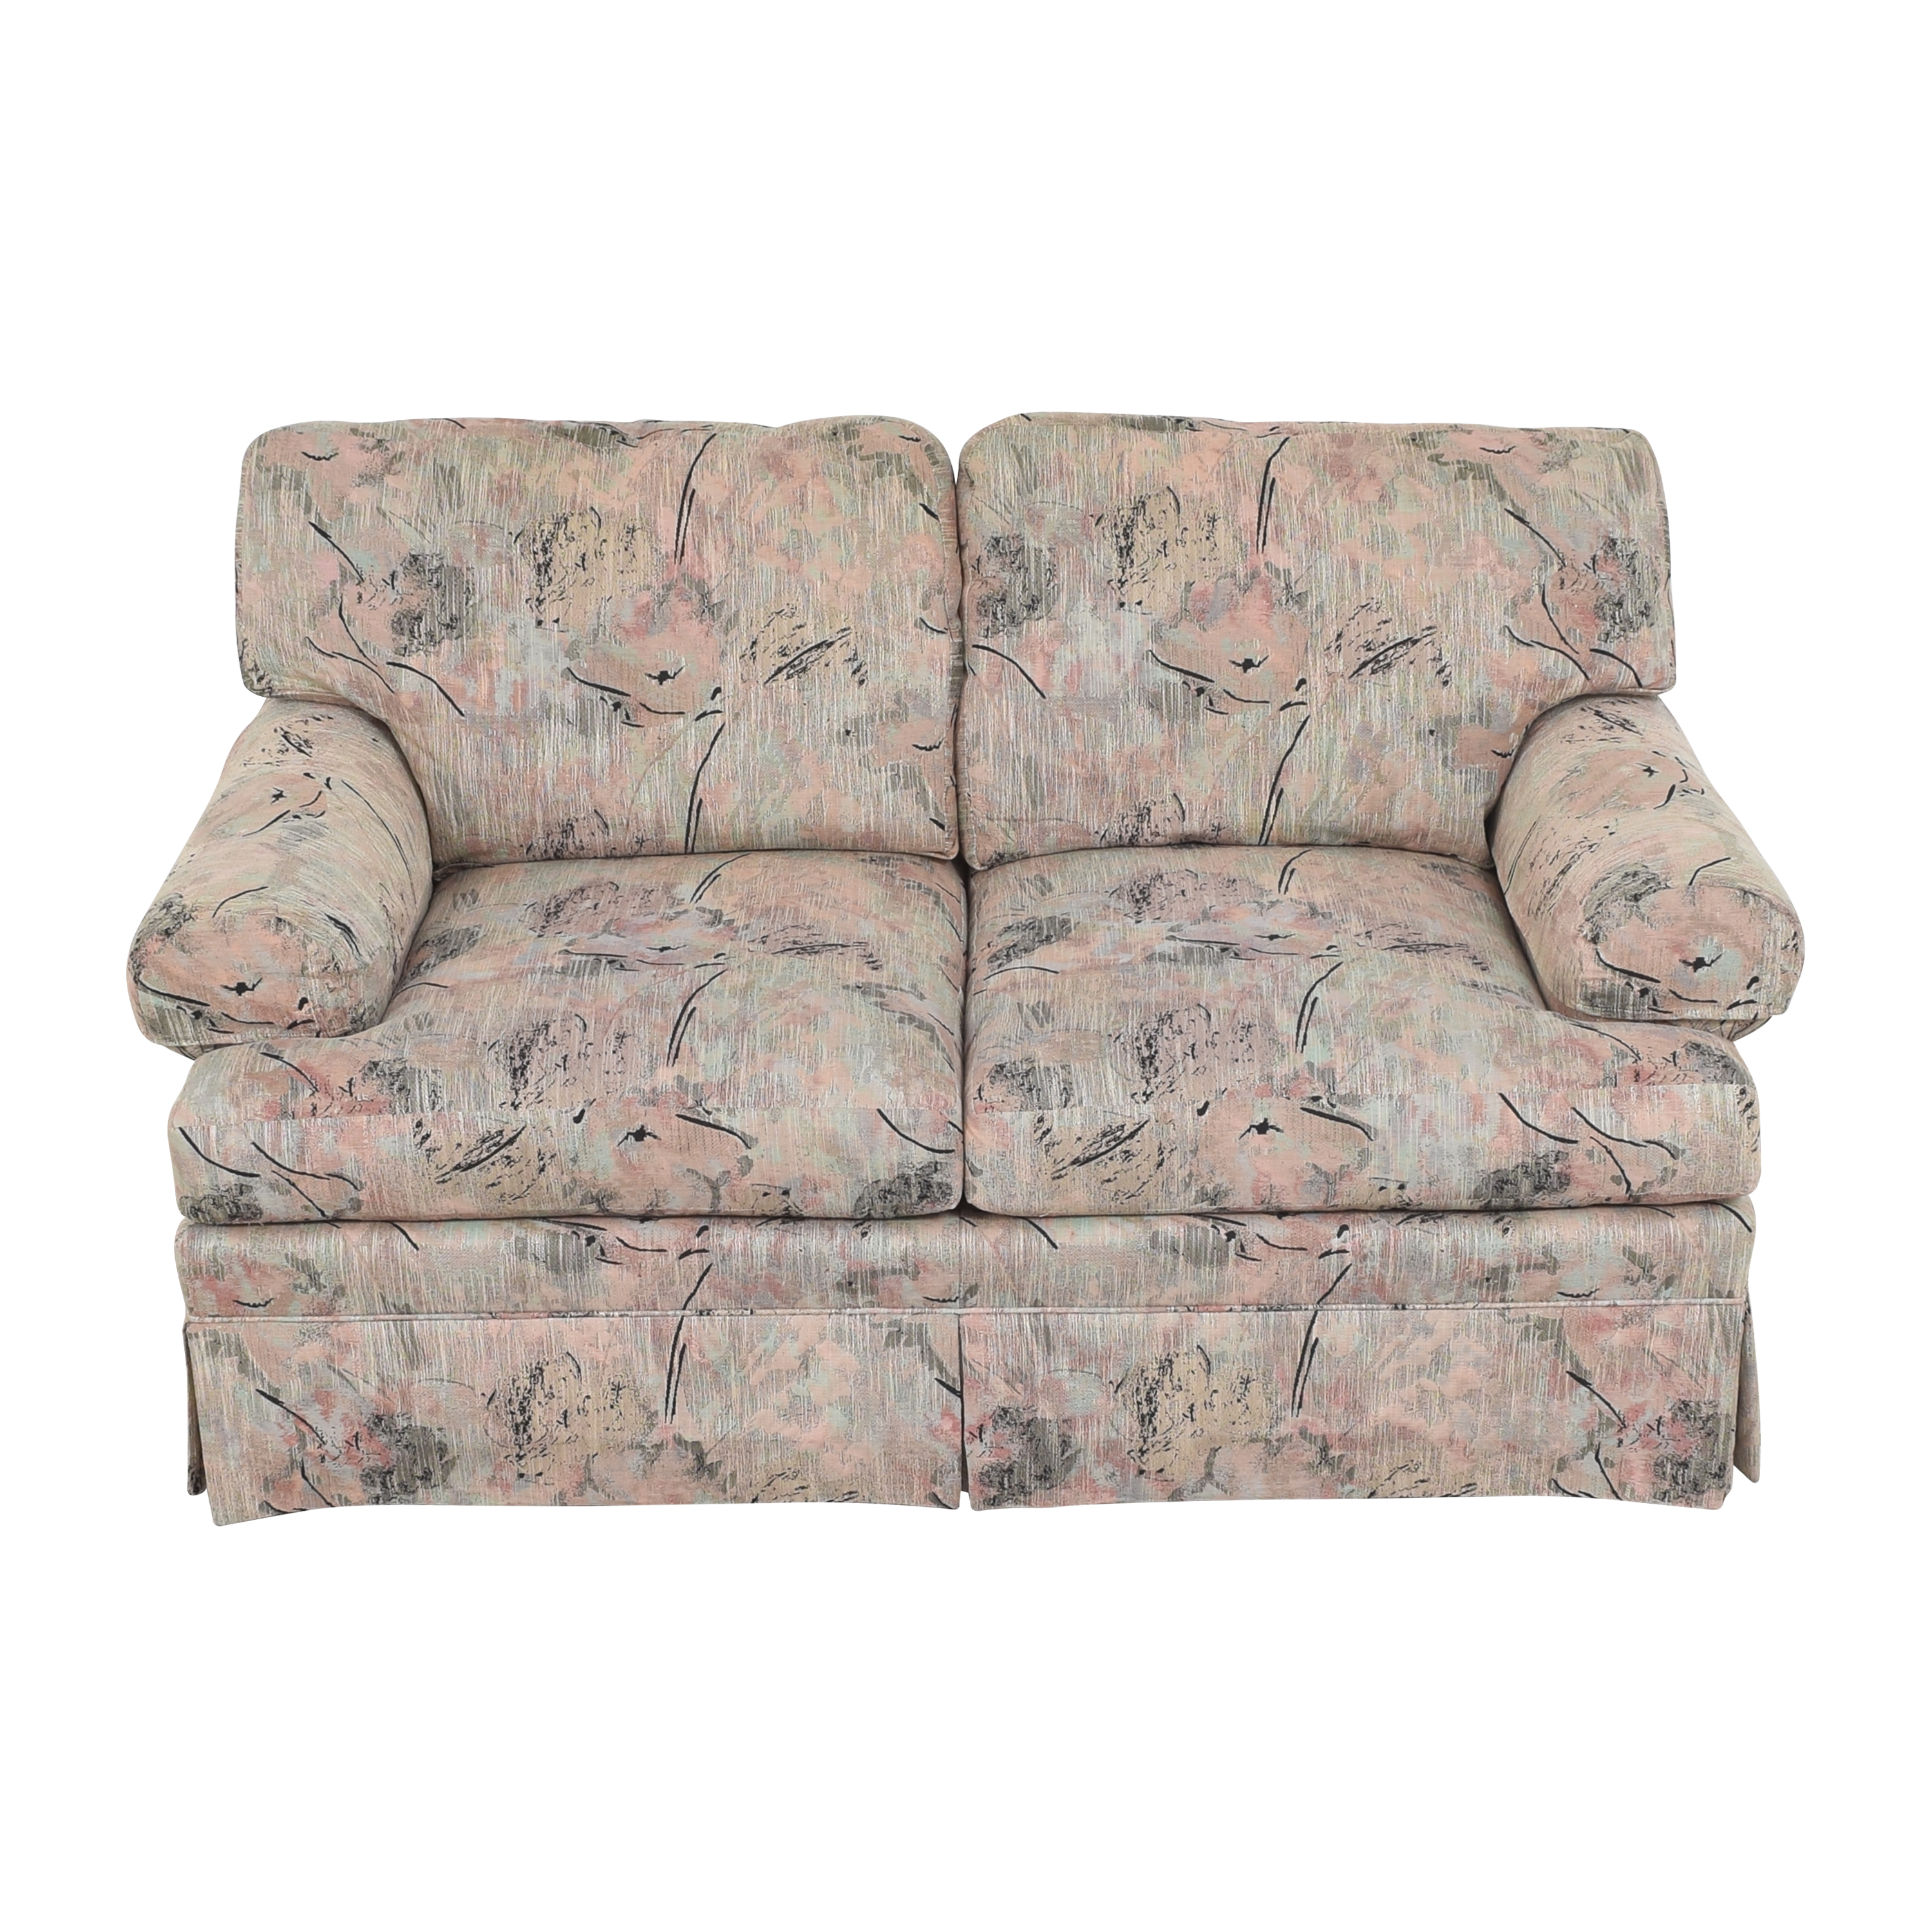 Ethan Allen Ethan Allen Two Cushion Floral Loveseat nyc